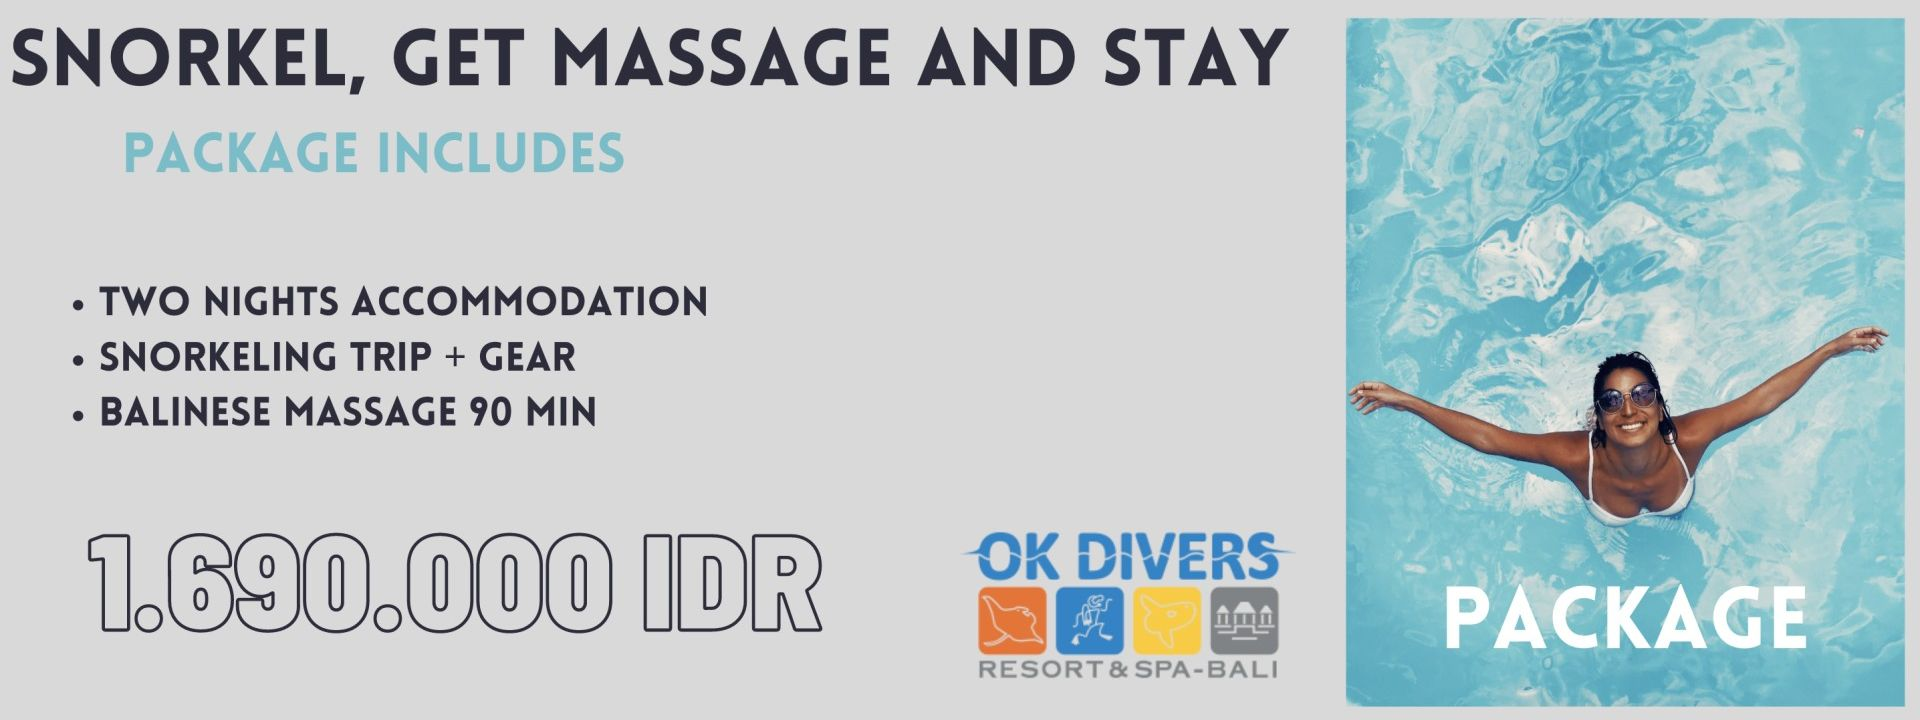 Snorkel, get massage and stay package